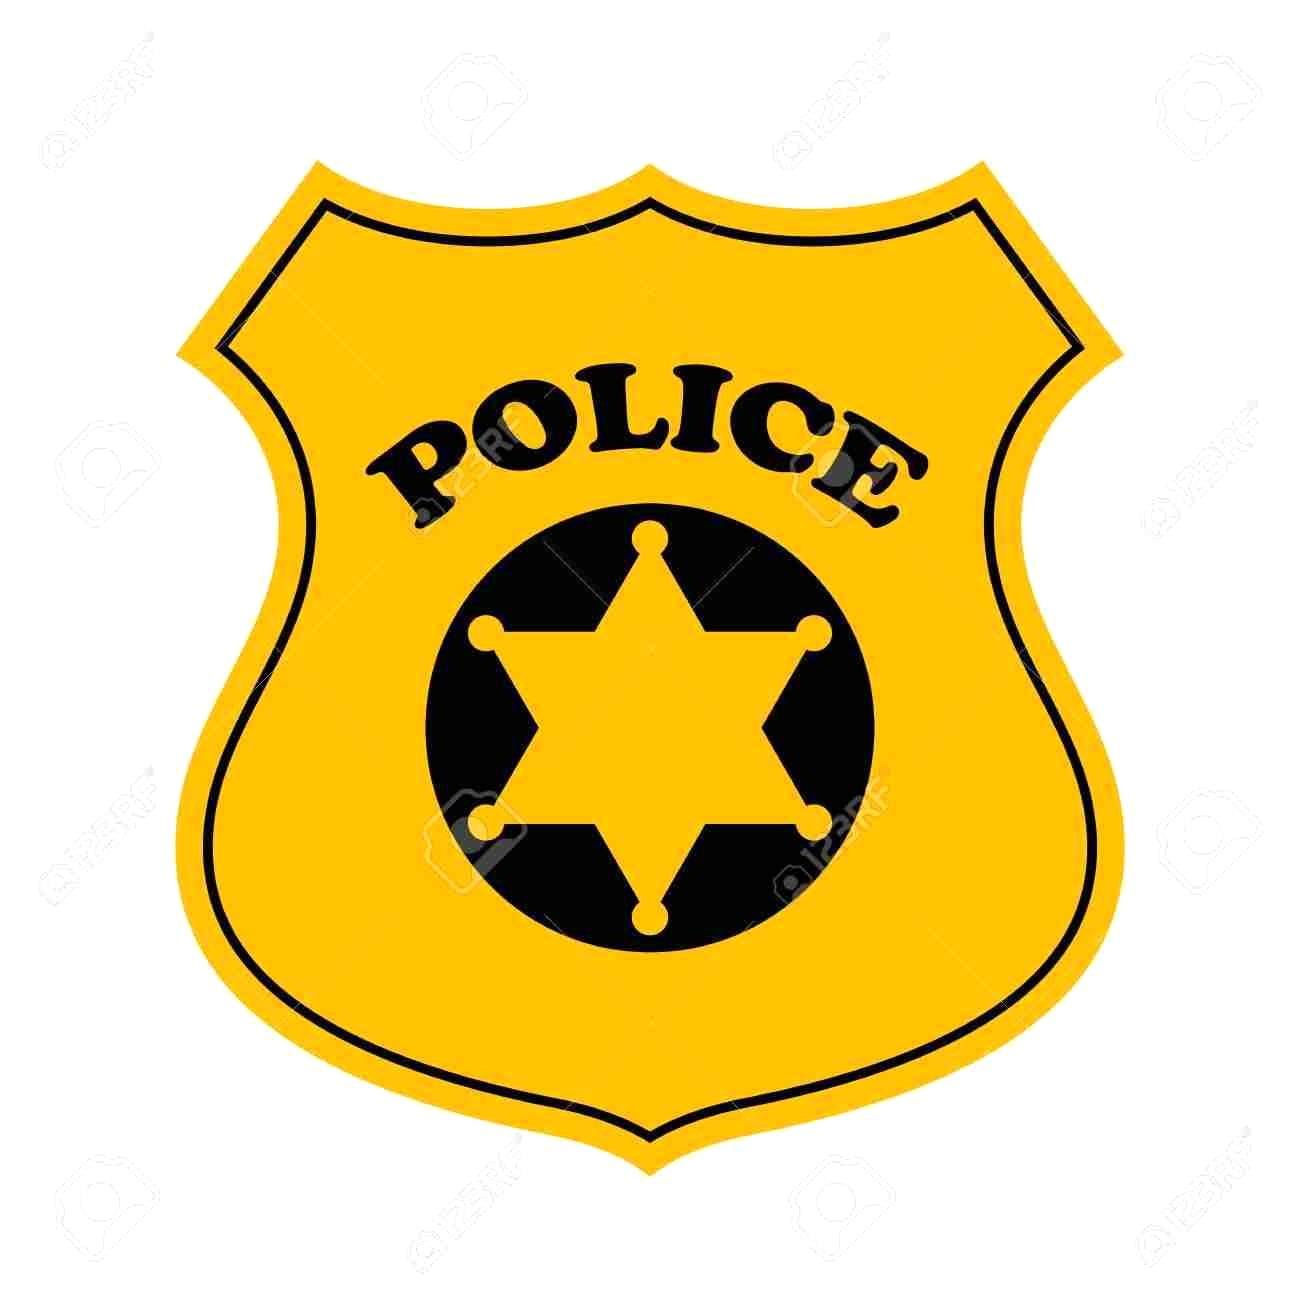 Police officer badge clipart 1 » Clipart Station.